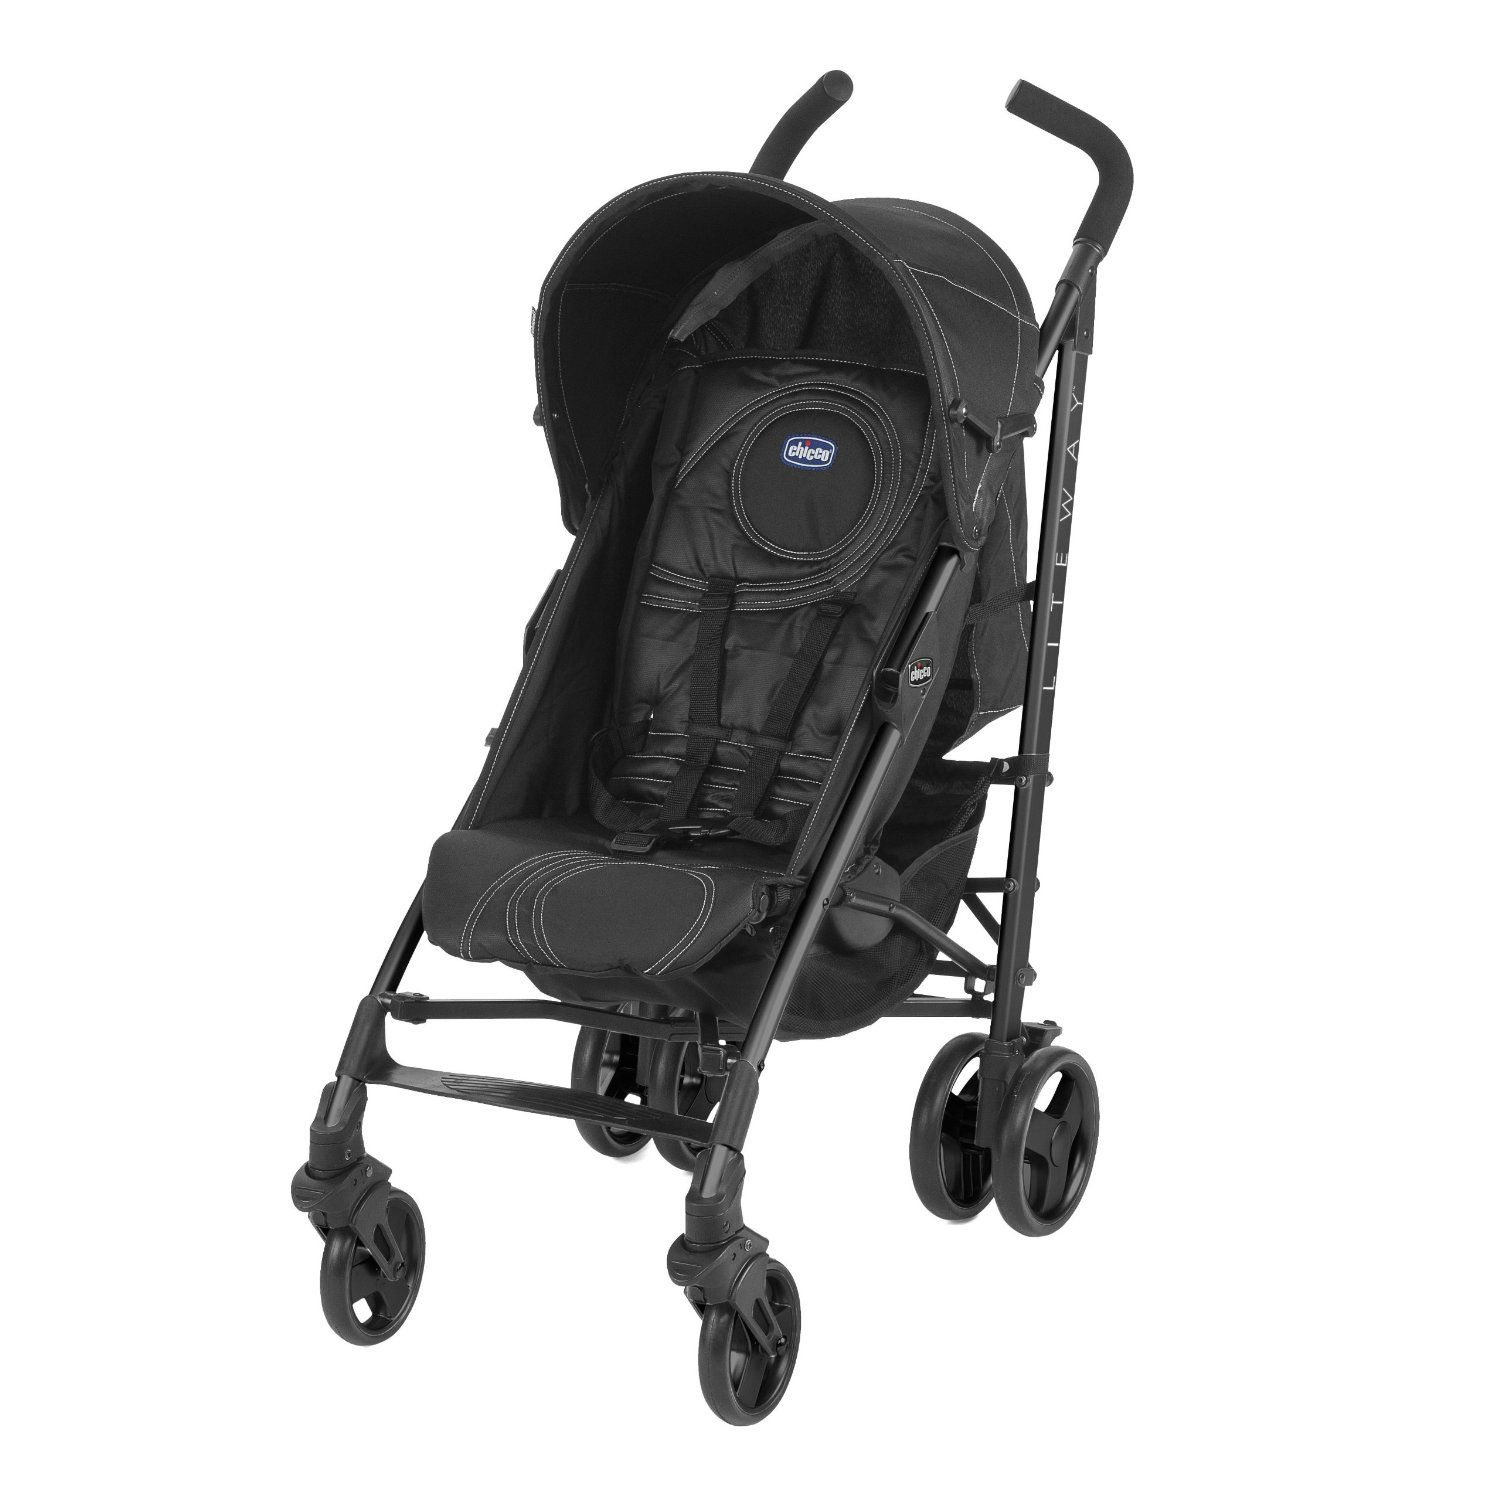 Chicco Liteway Stroller (Ombra) Amazon.co.uk Baby